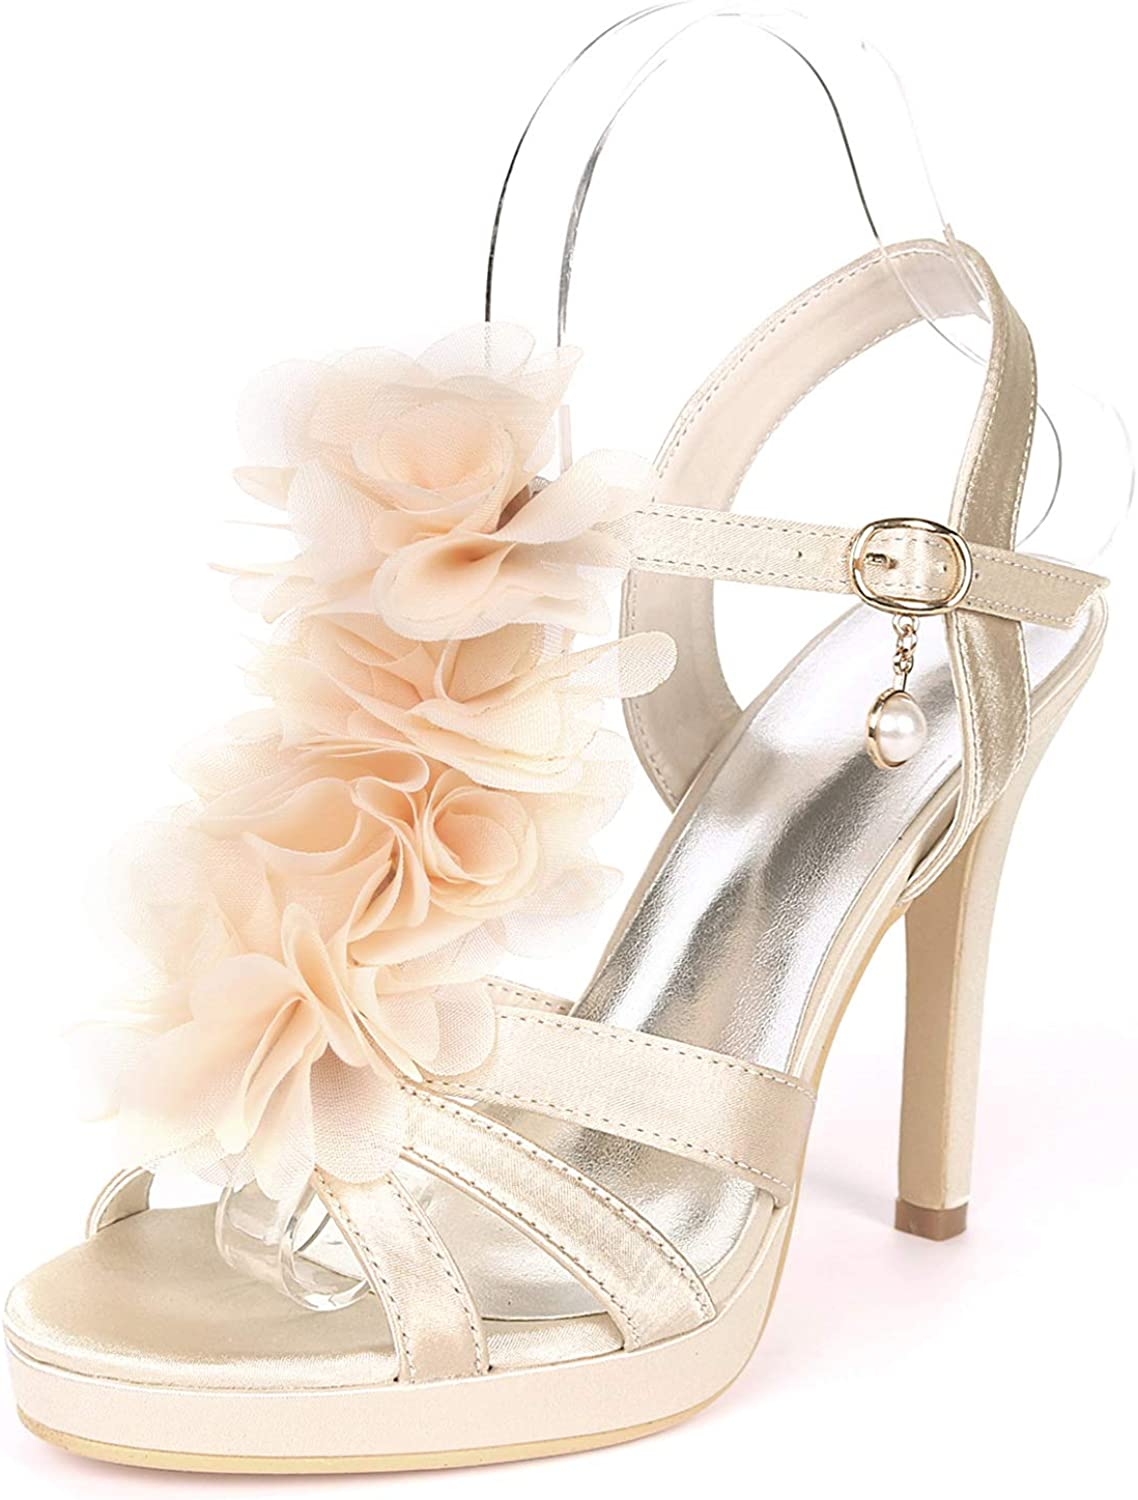 Myloo Women's Open Toe Stilettos High Heel Pumps with Ankle Strap Floral Wedding Dress shoes